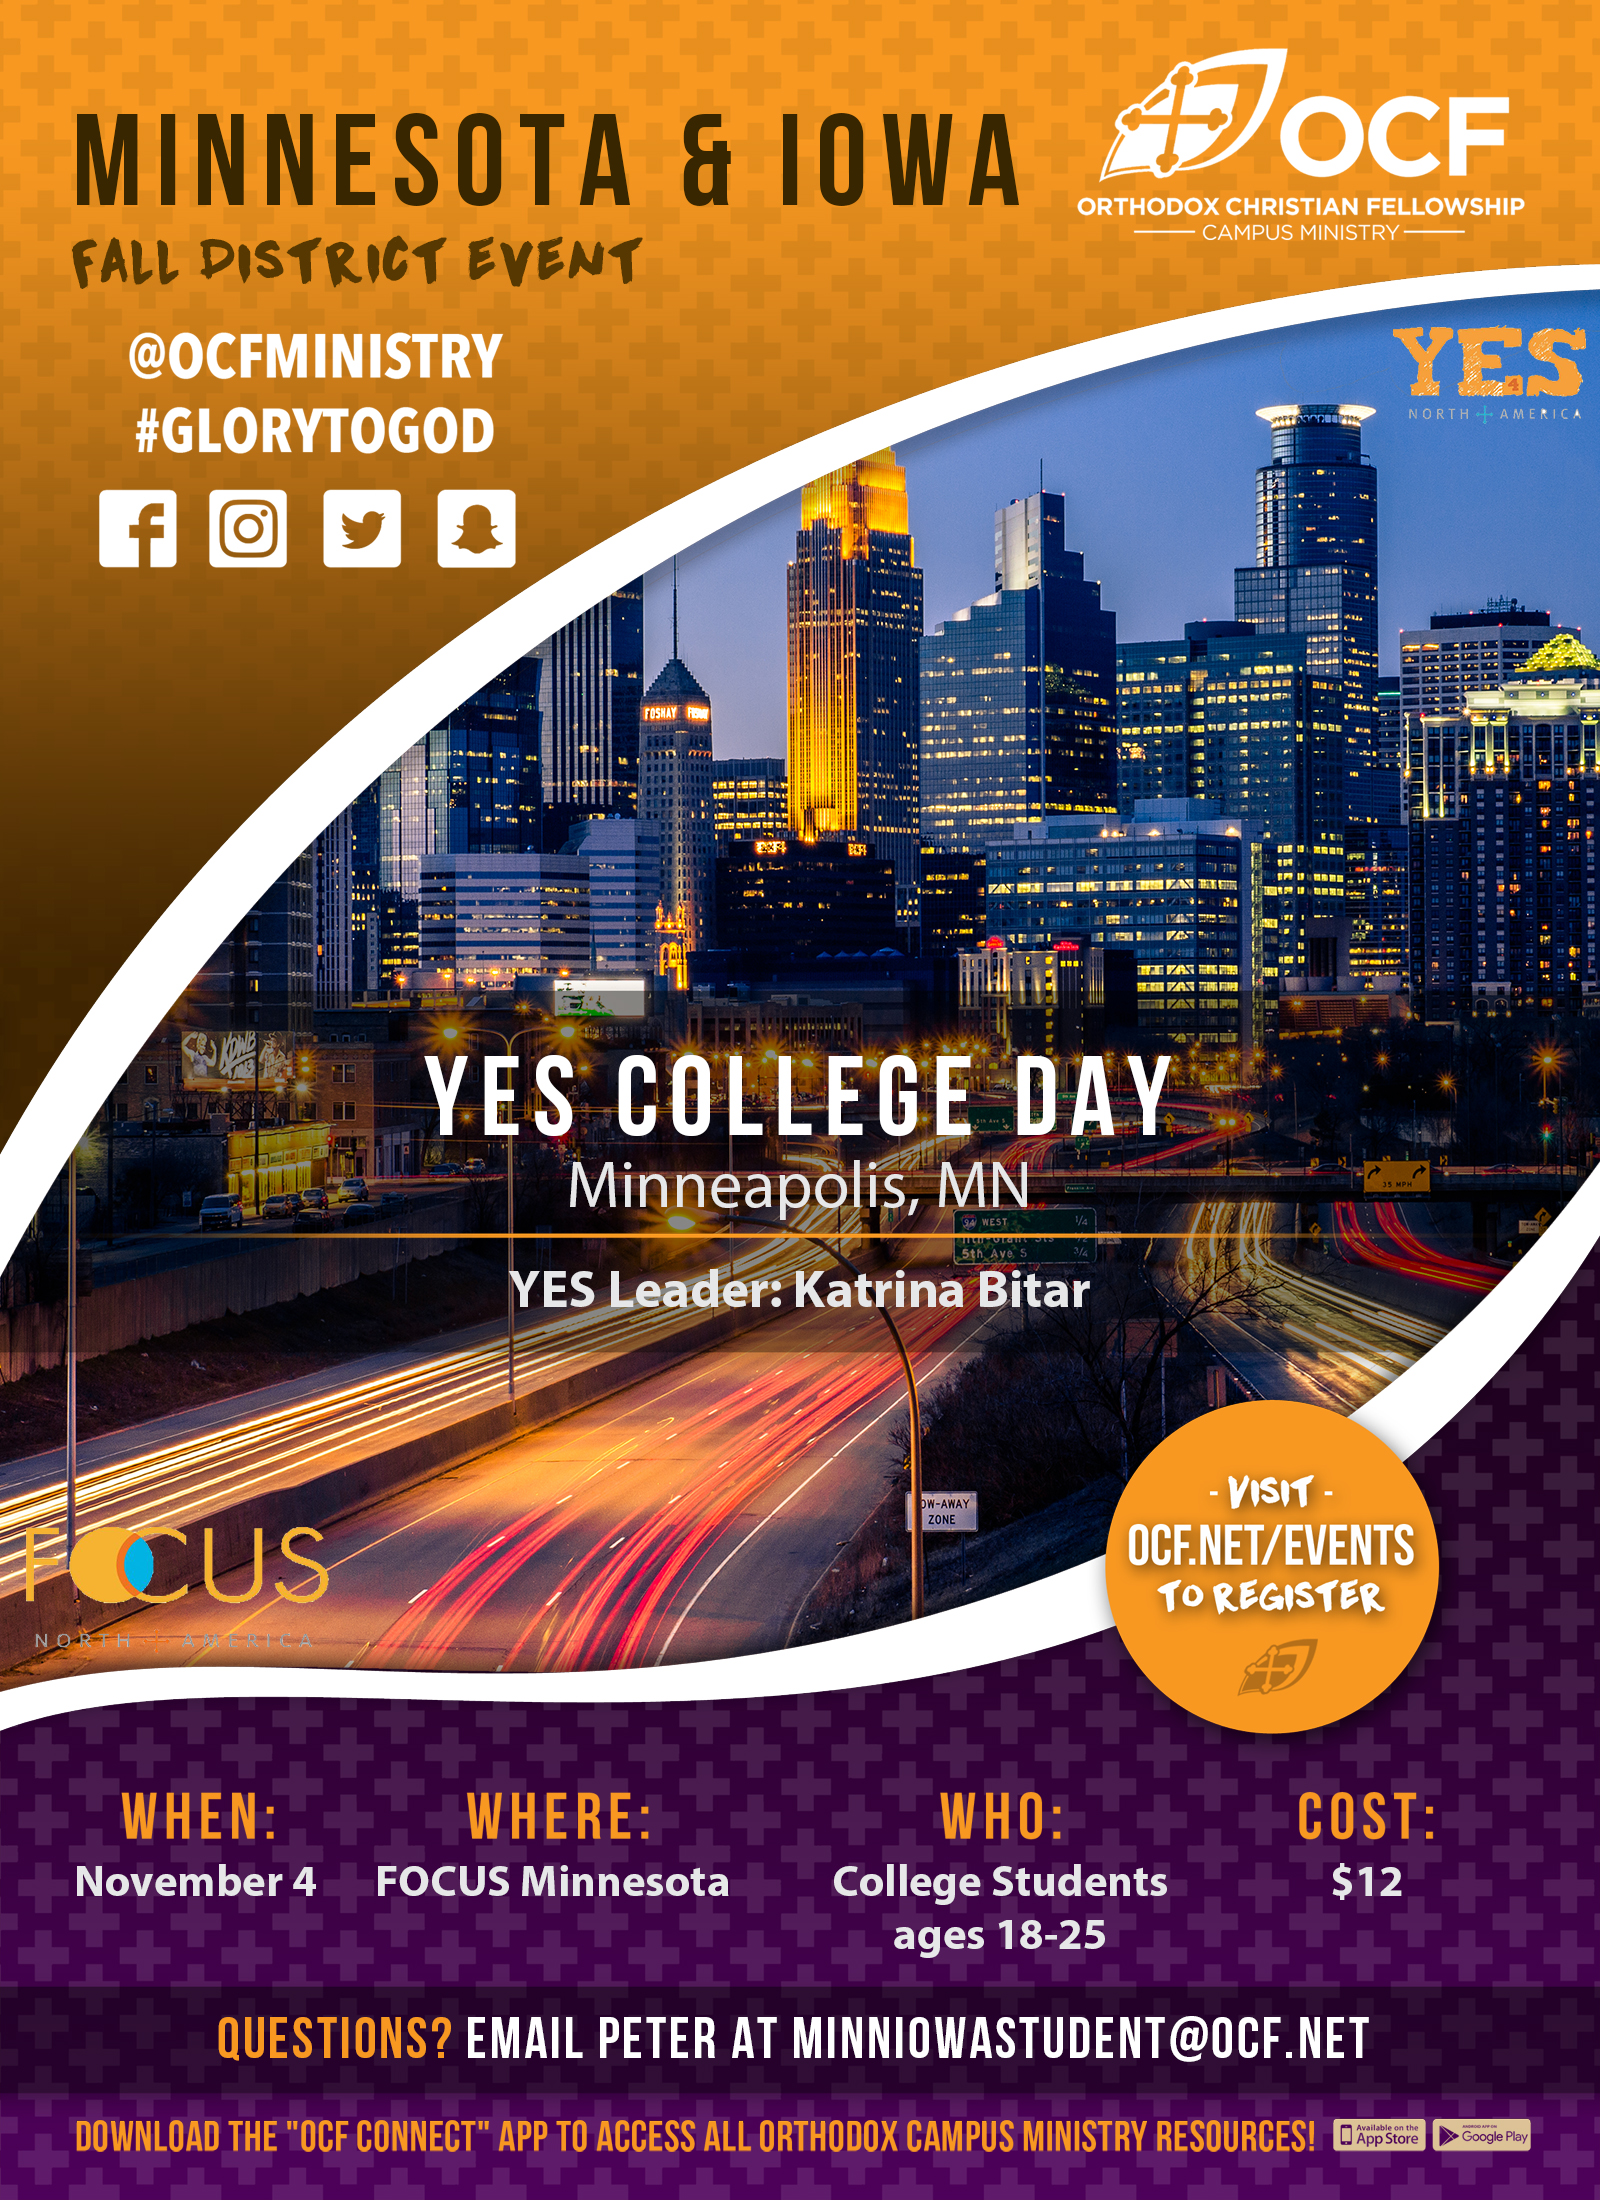 Fall 2017 Minnesota & Iowa YES College Day